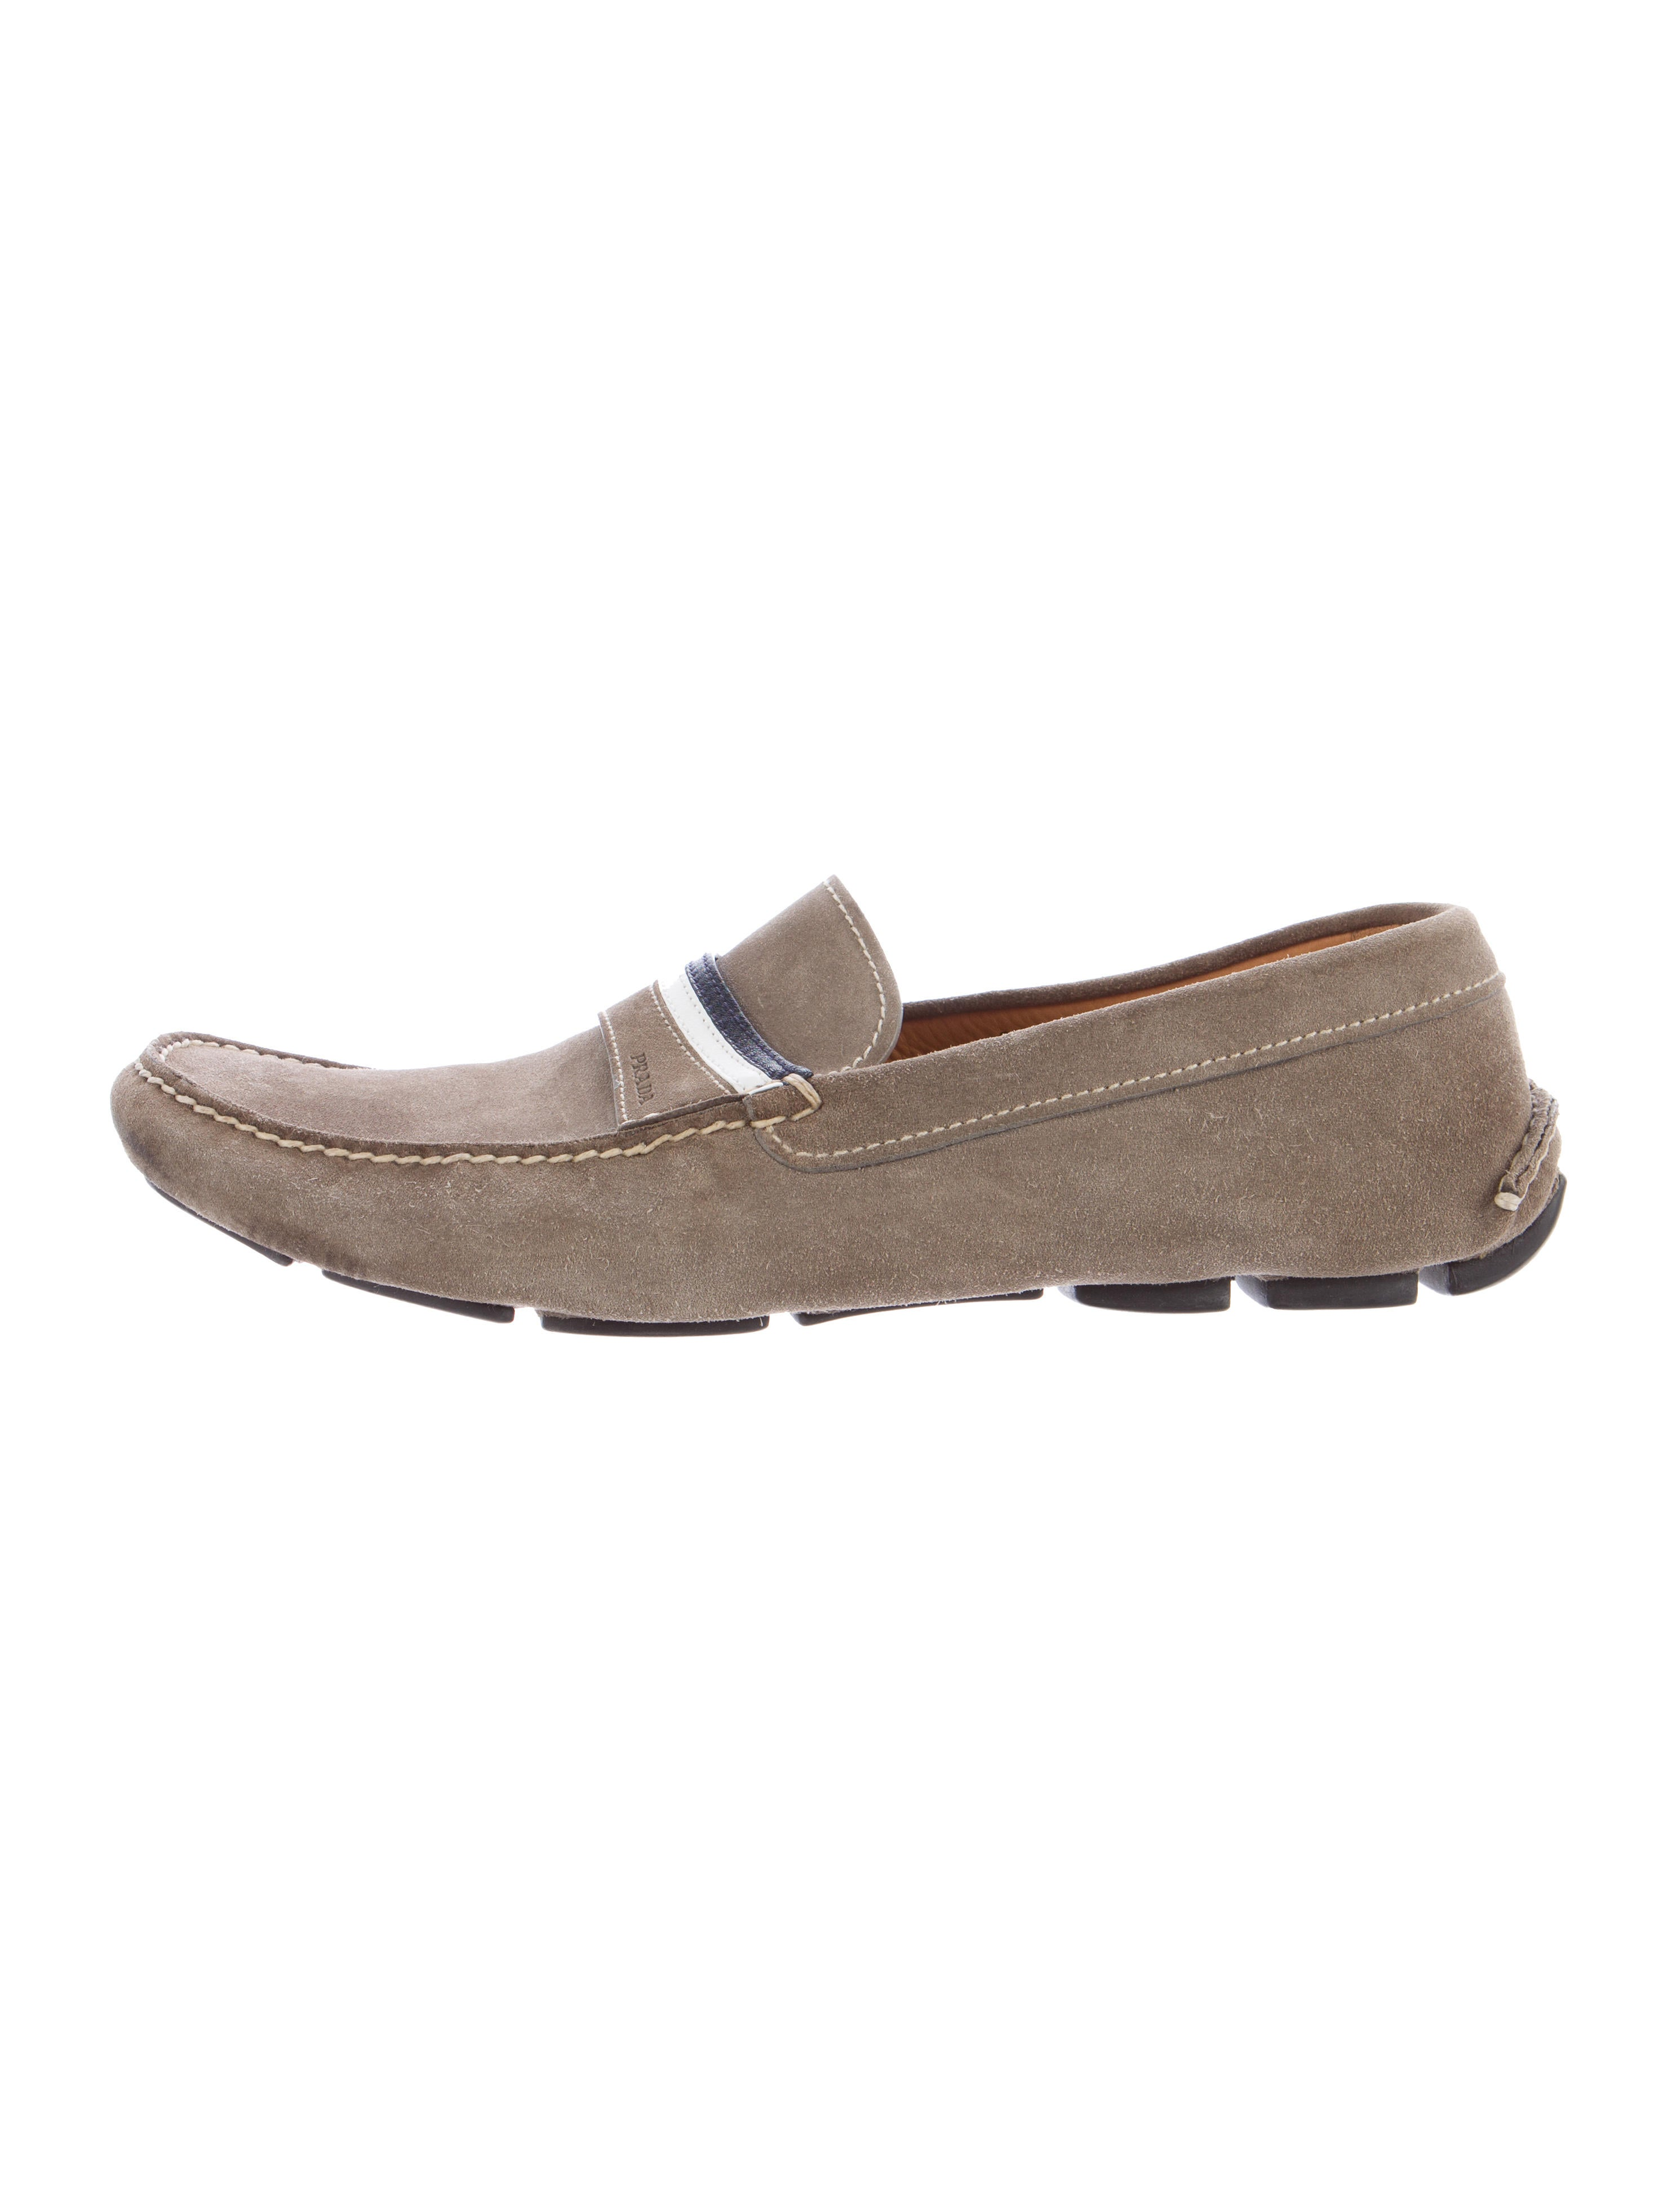 The ultimate leisure shoe, this driving loafer by HUGO is made with soft suede. Sticking to its heritage in car racing, the footbed is constructed with extra padding for maximum comfort while navigating a road — or a palm tree-lined boardwalk.